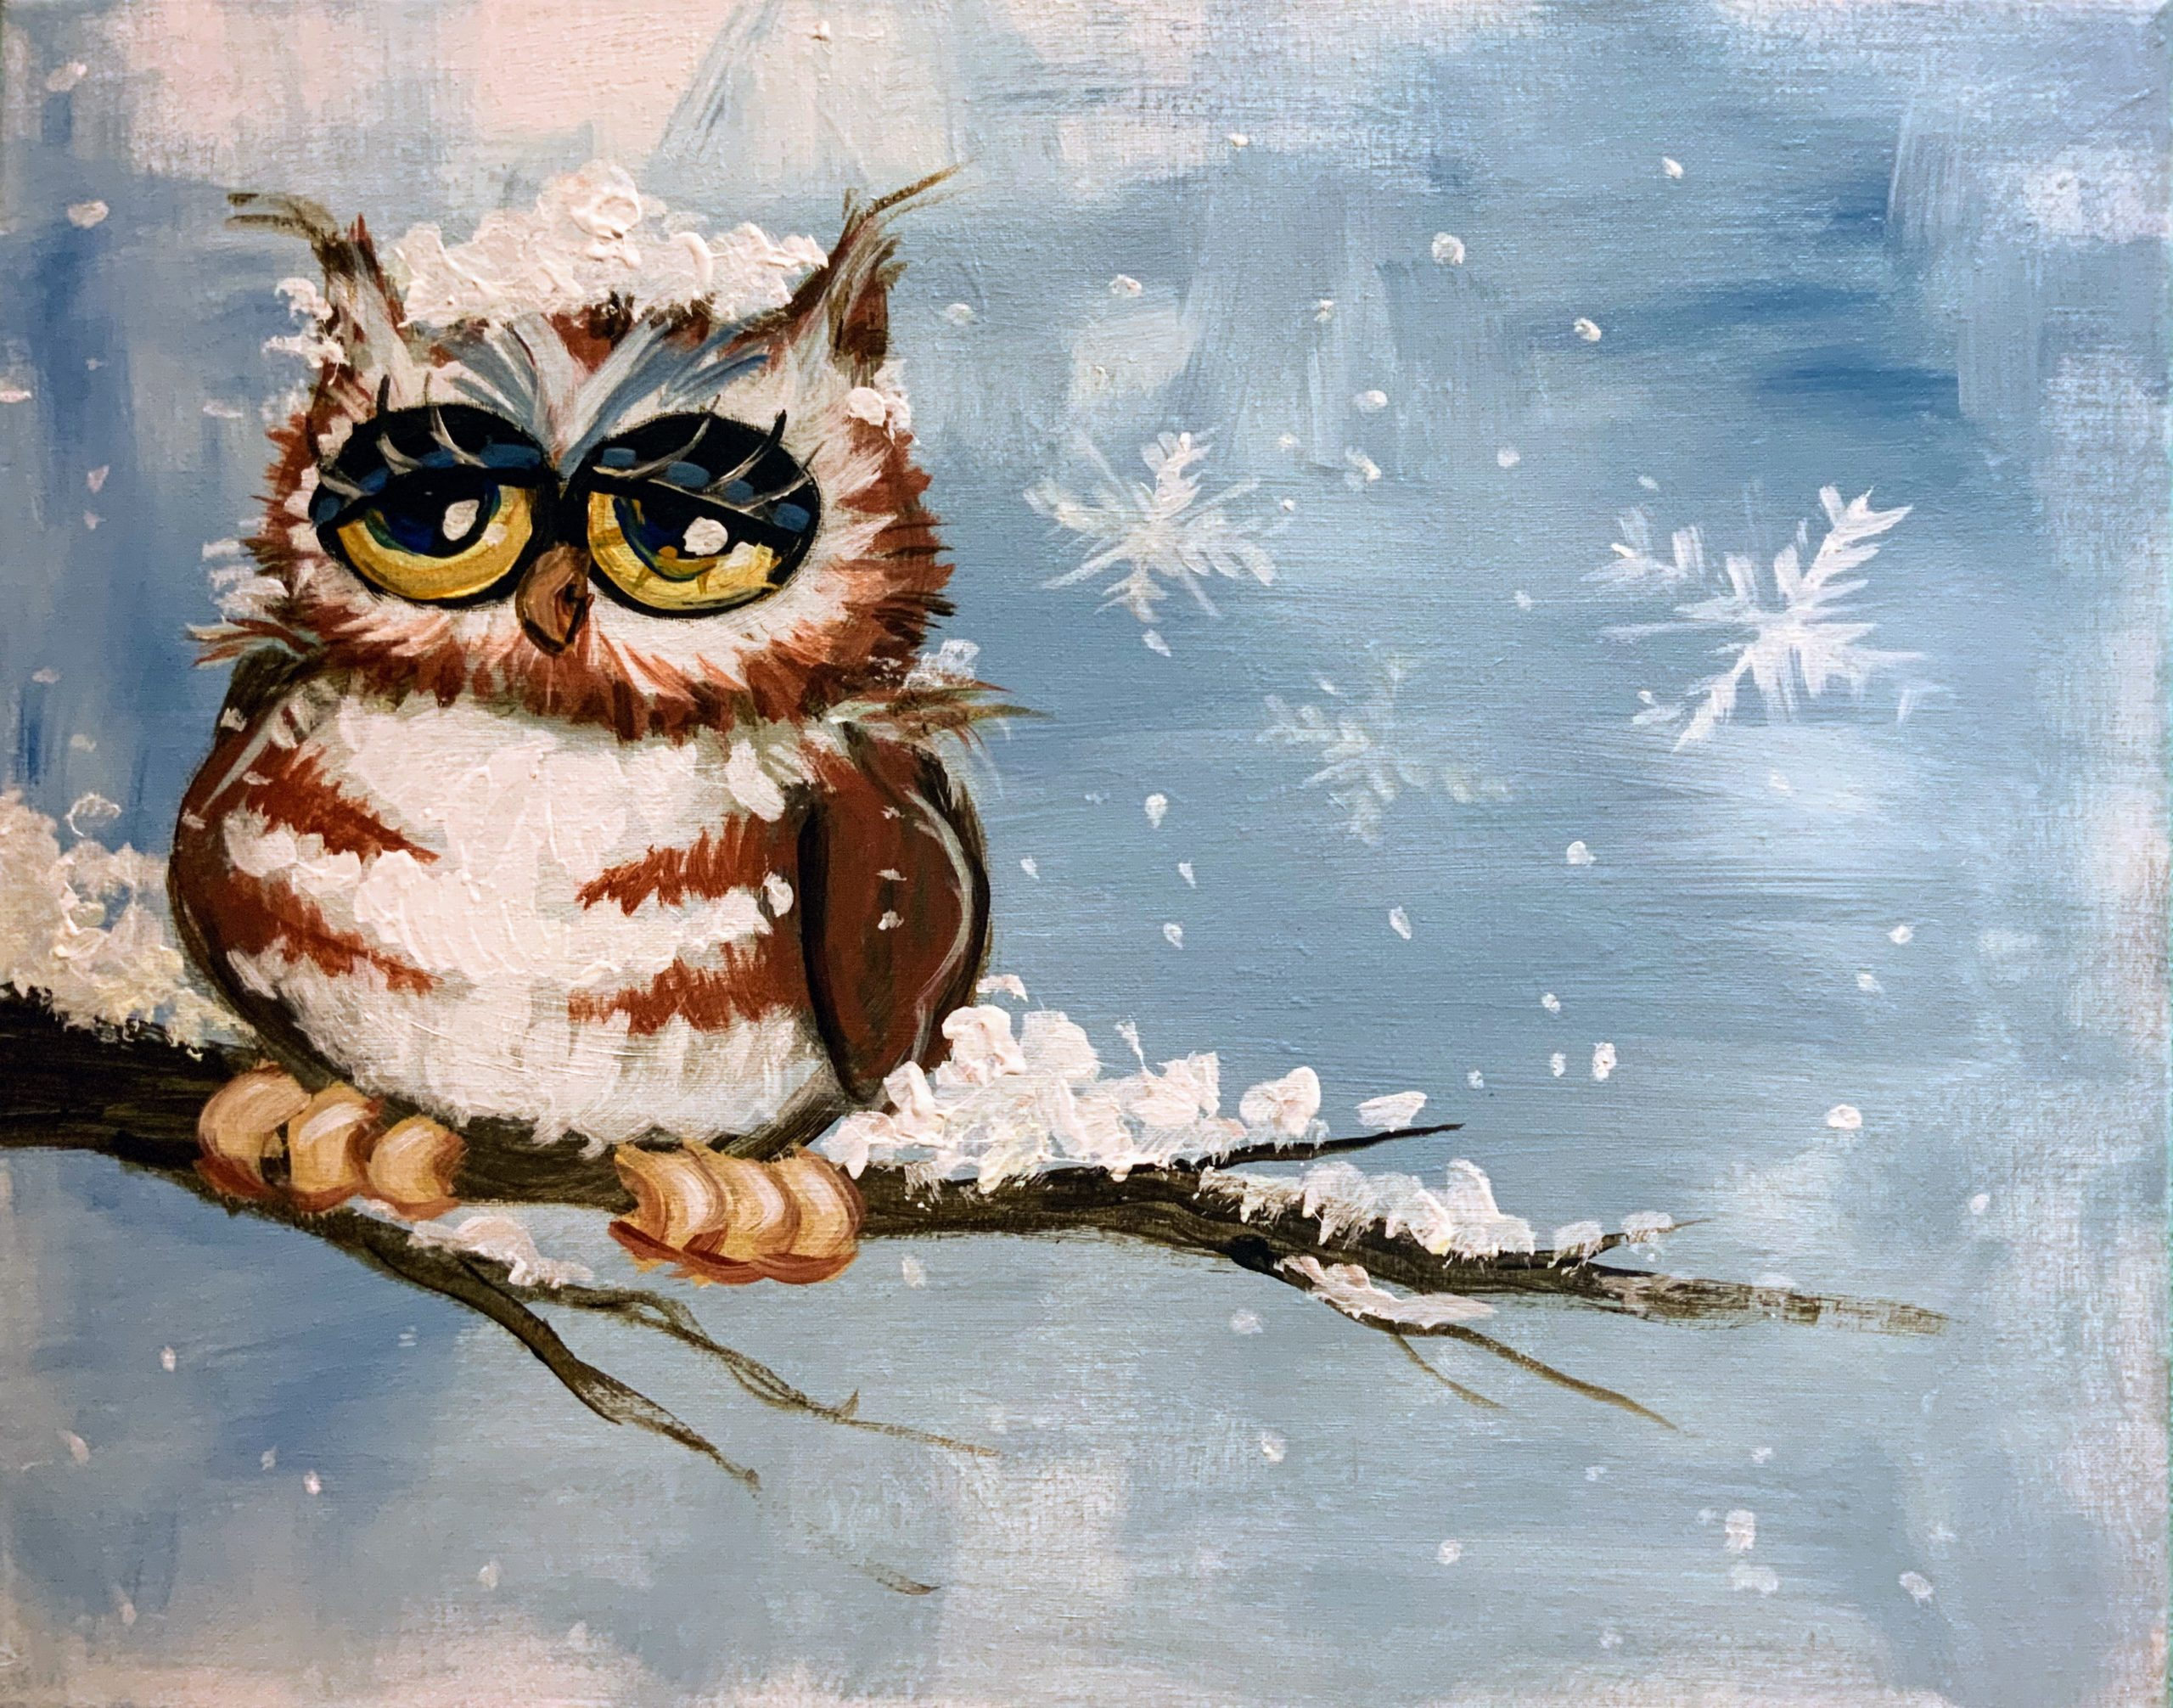 Snowy Owl | The Loaded Brush Paint & Sip Classes | loadedbrushpdx.com